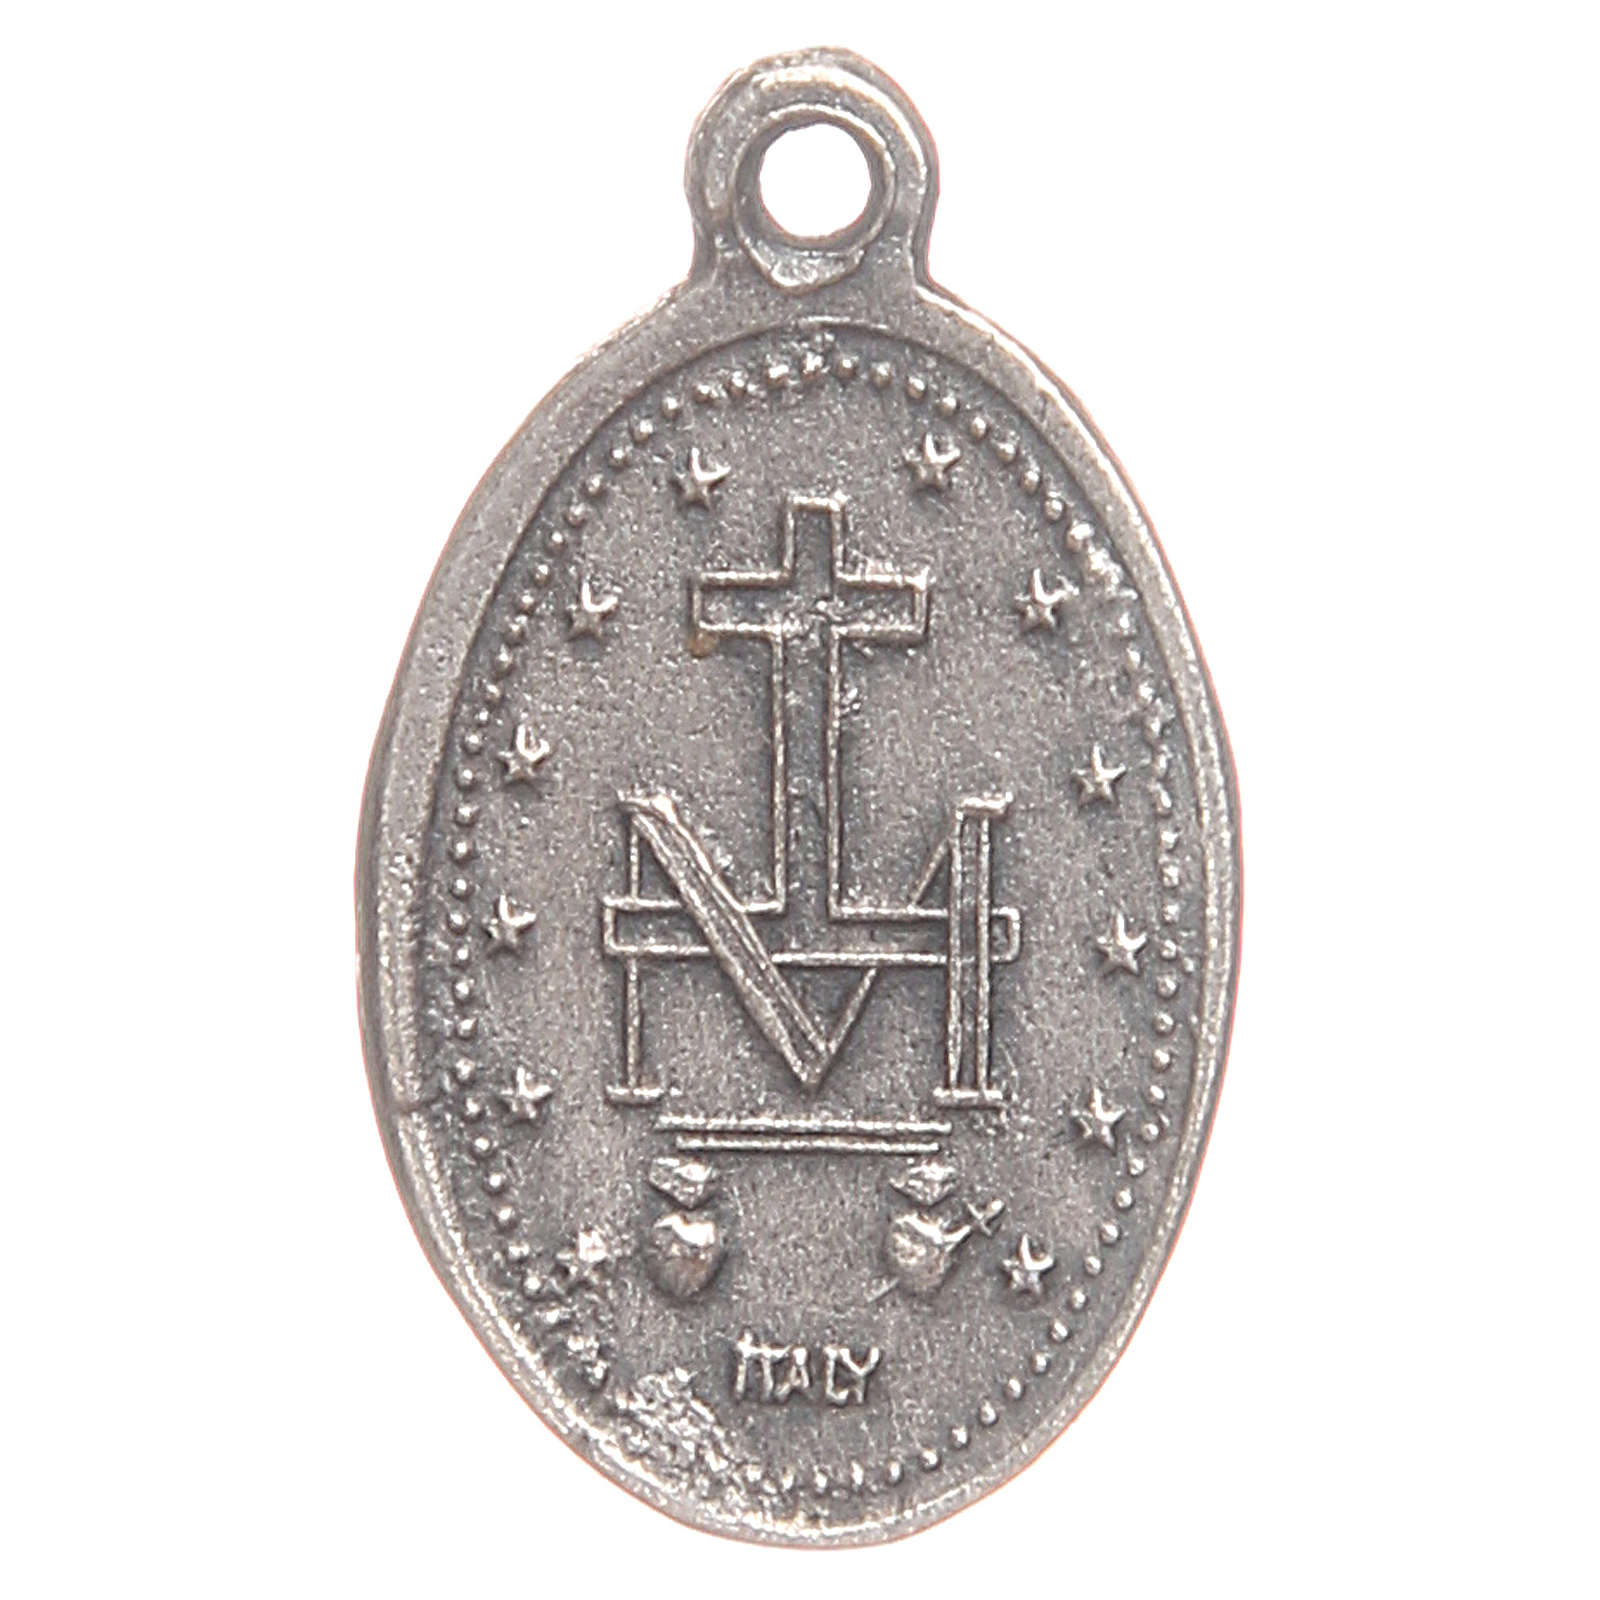 Miraculous Medal measuring 1.9cm 4